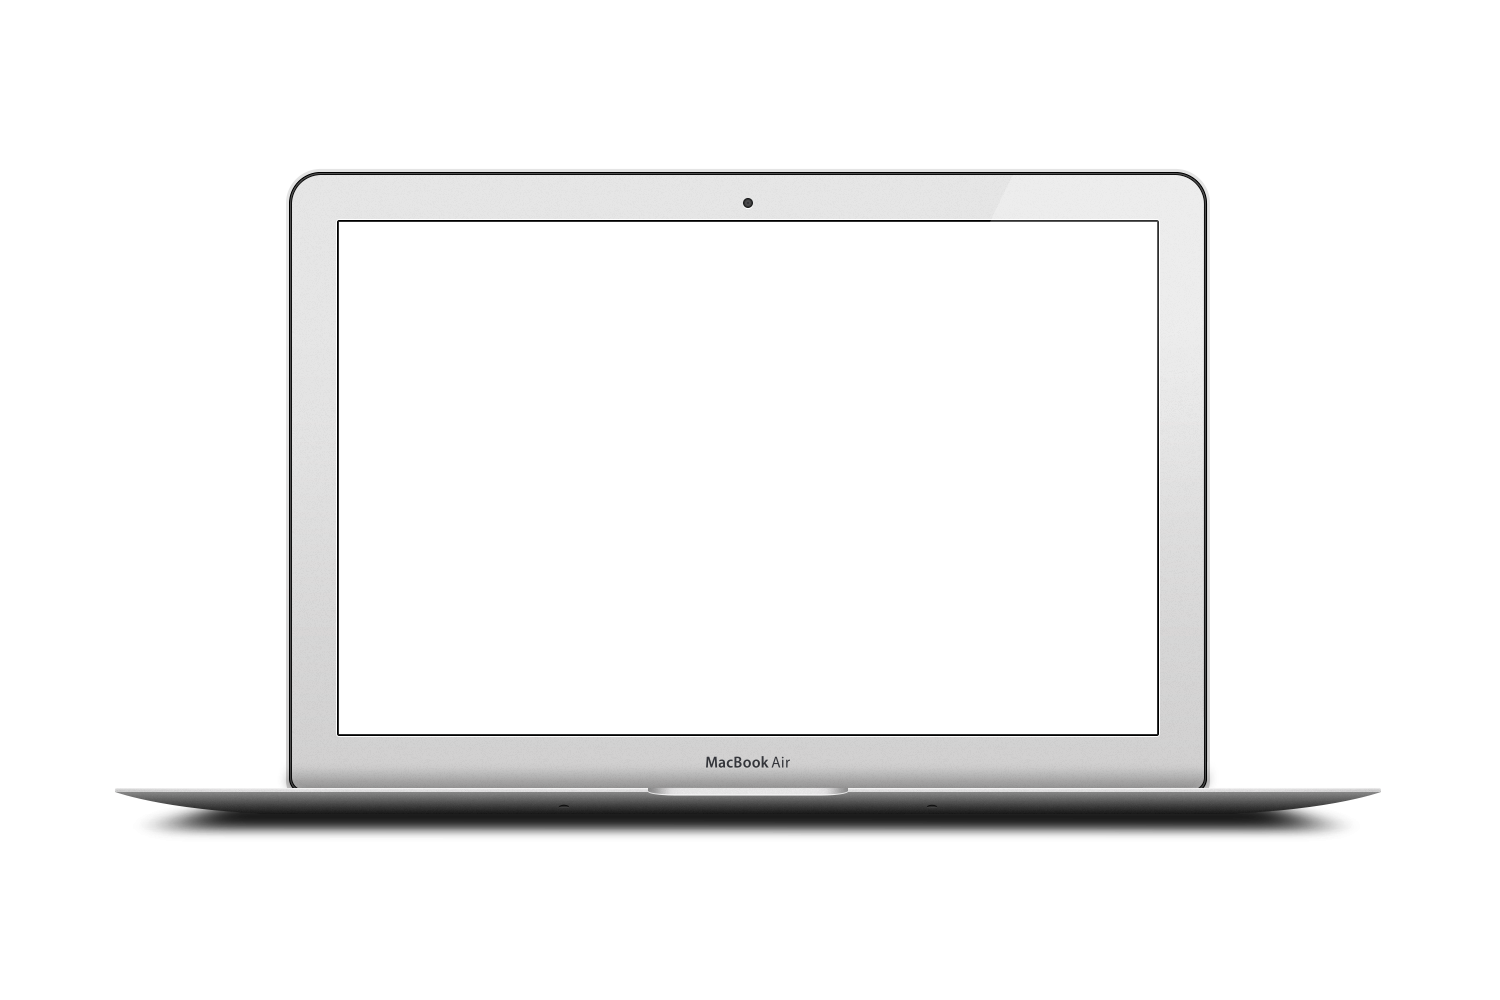 Macbook air png. Images transparent free download